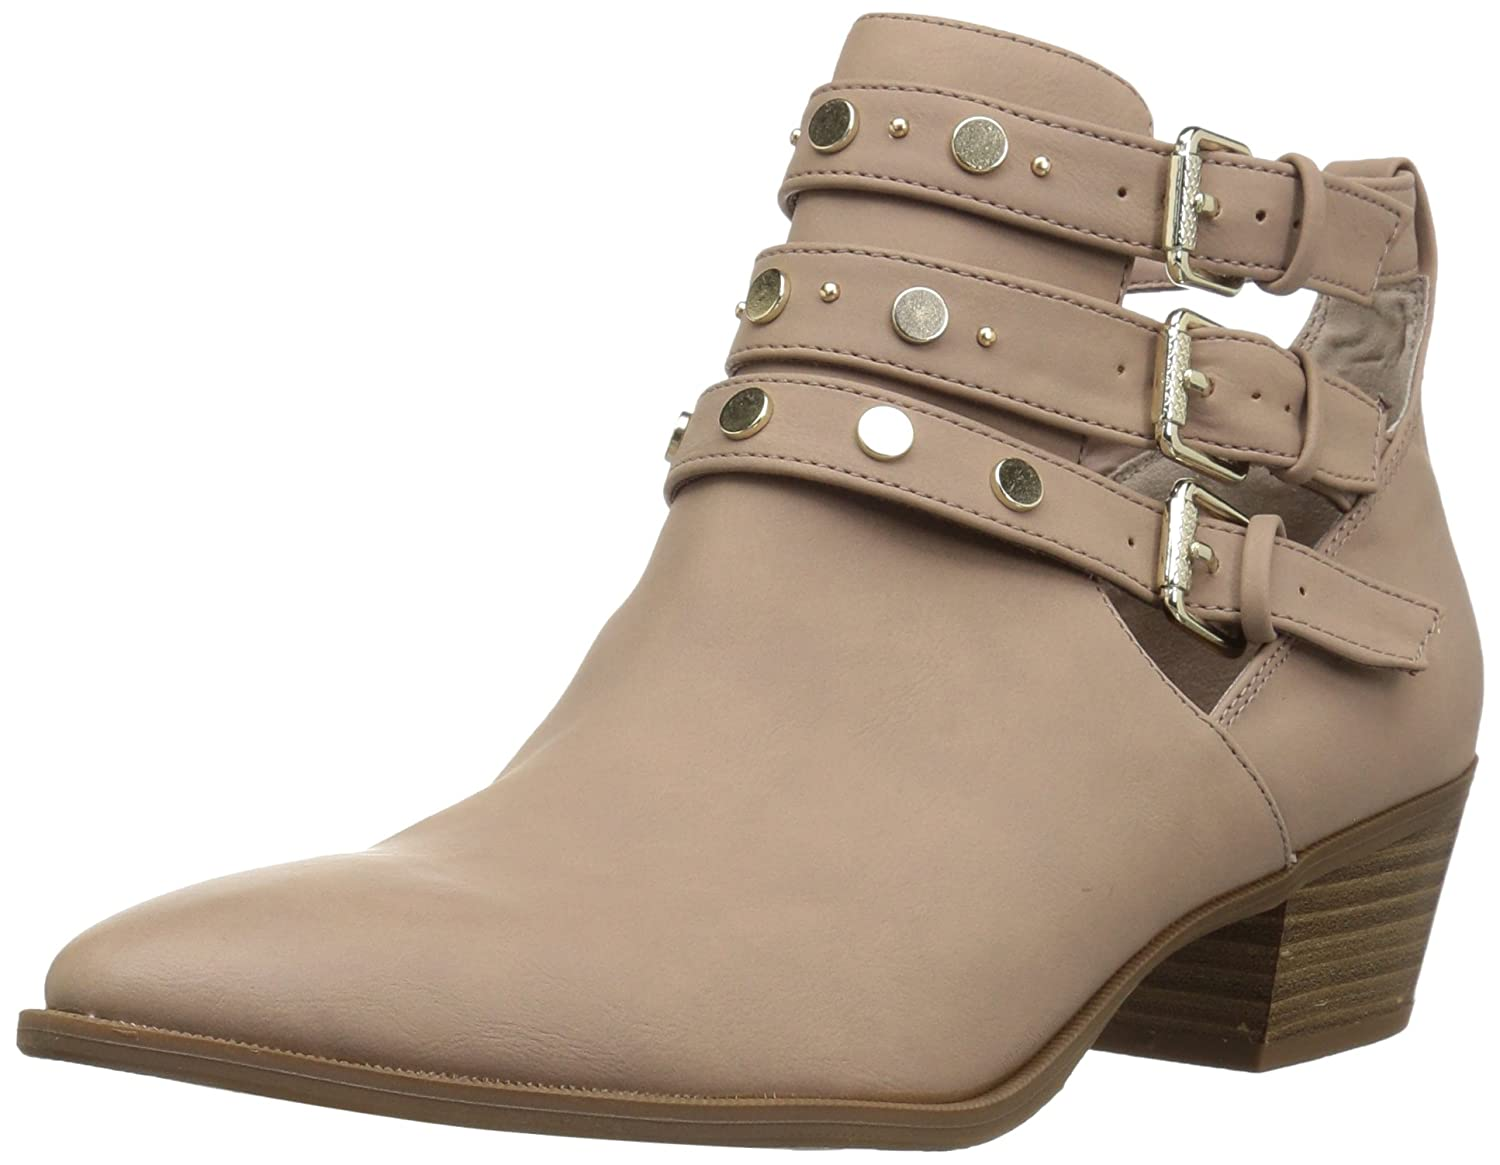 Circus by Sam Edelman Women's Henna Ankle Boot B01N6JHE7M 10 B(M) US|Taupe Rose